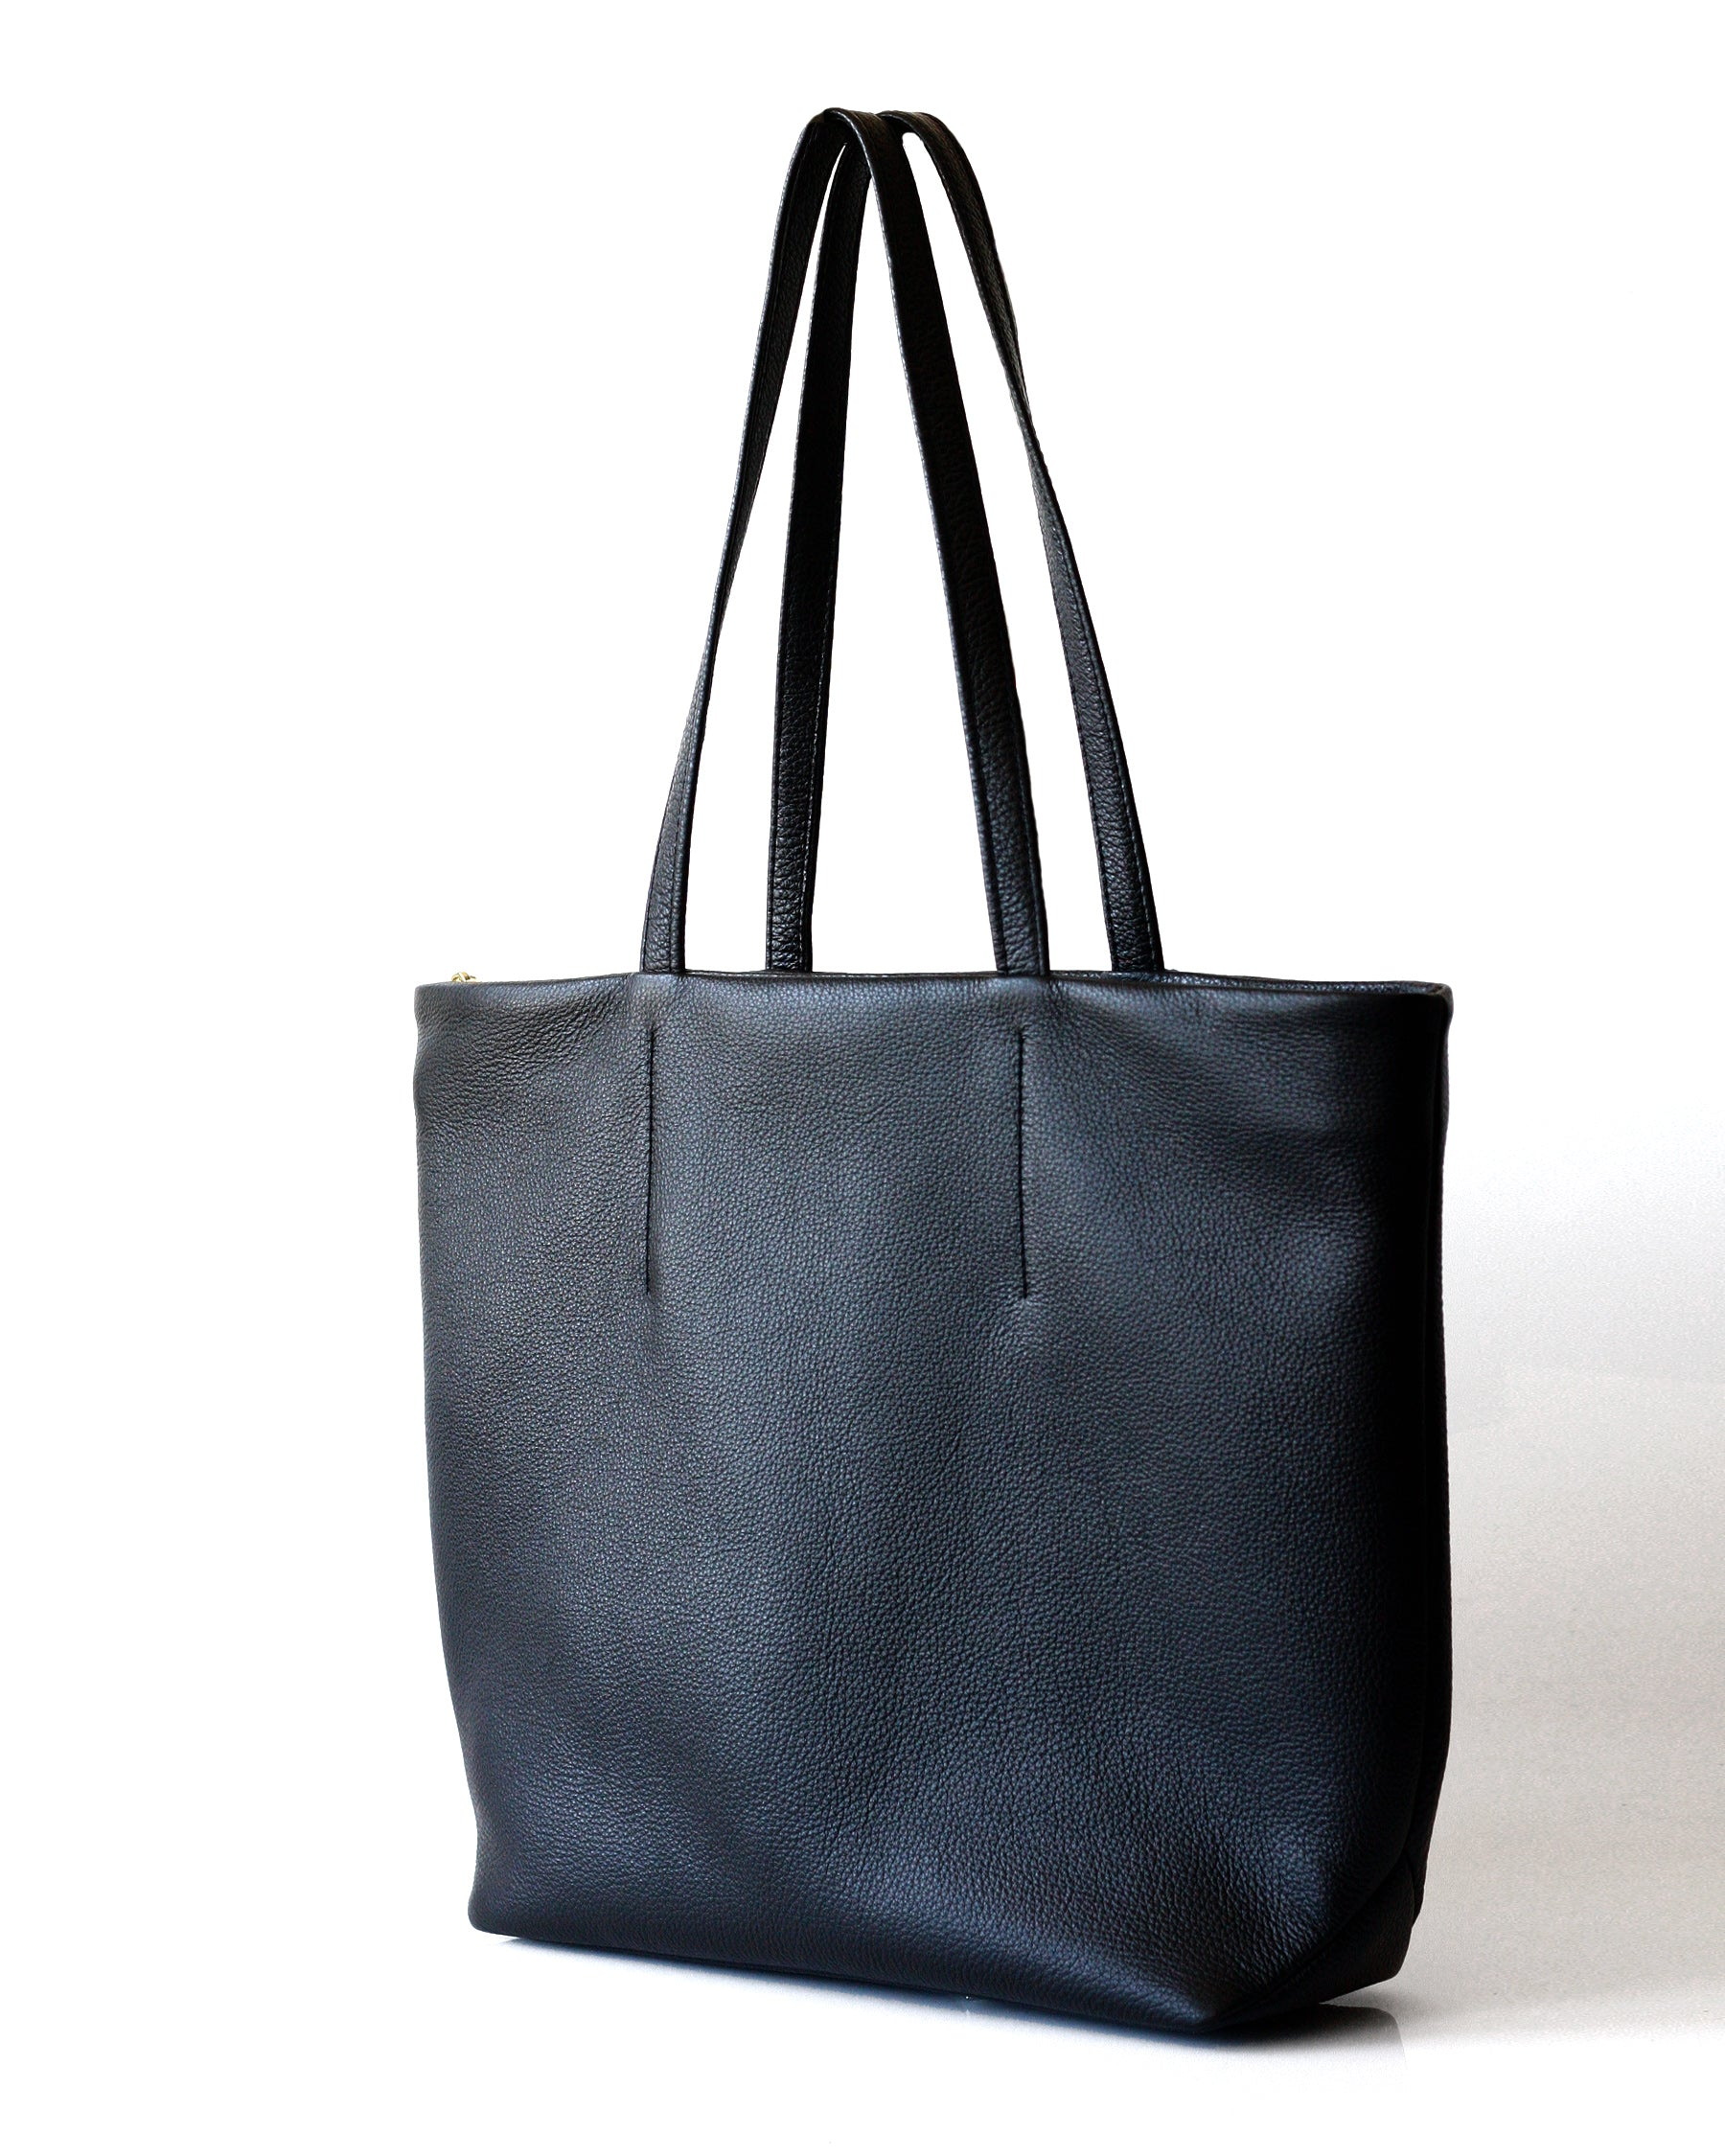 Mindy Tote - Opelle bag Permanent Collection - Opelle leather handbag handcrafted leather bag toronto Canada